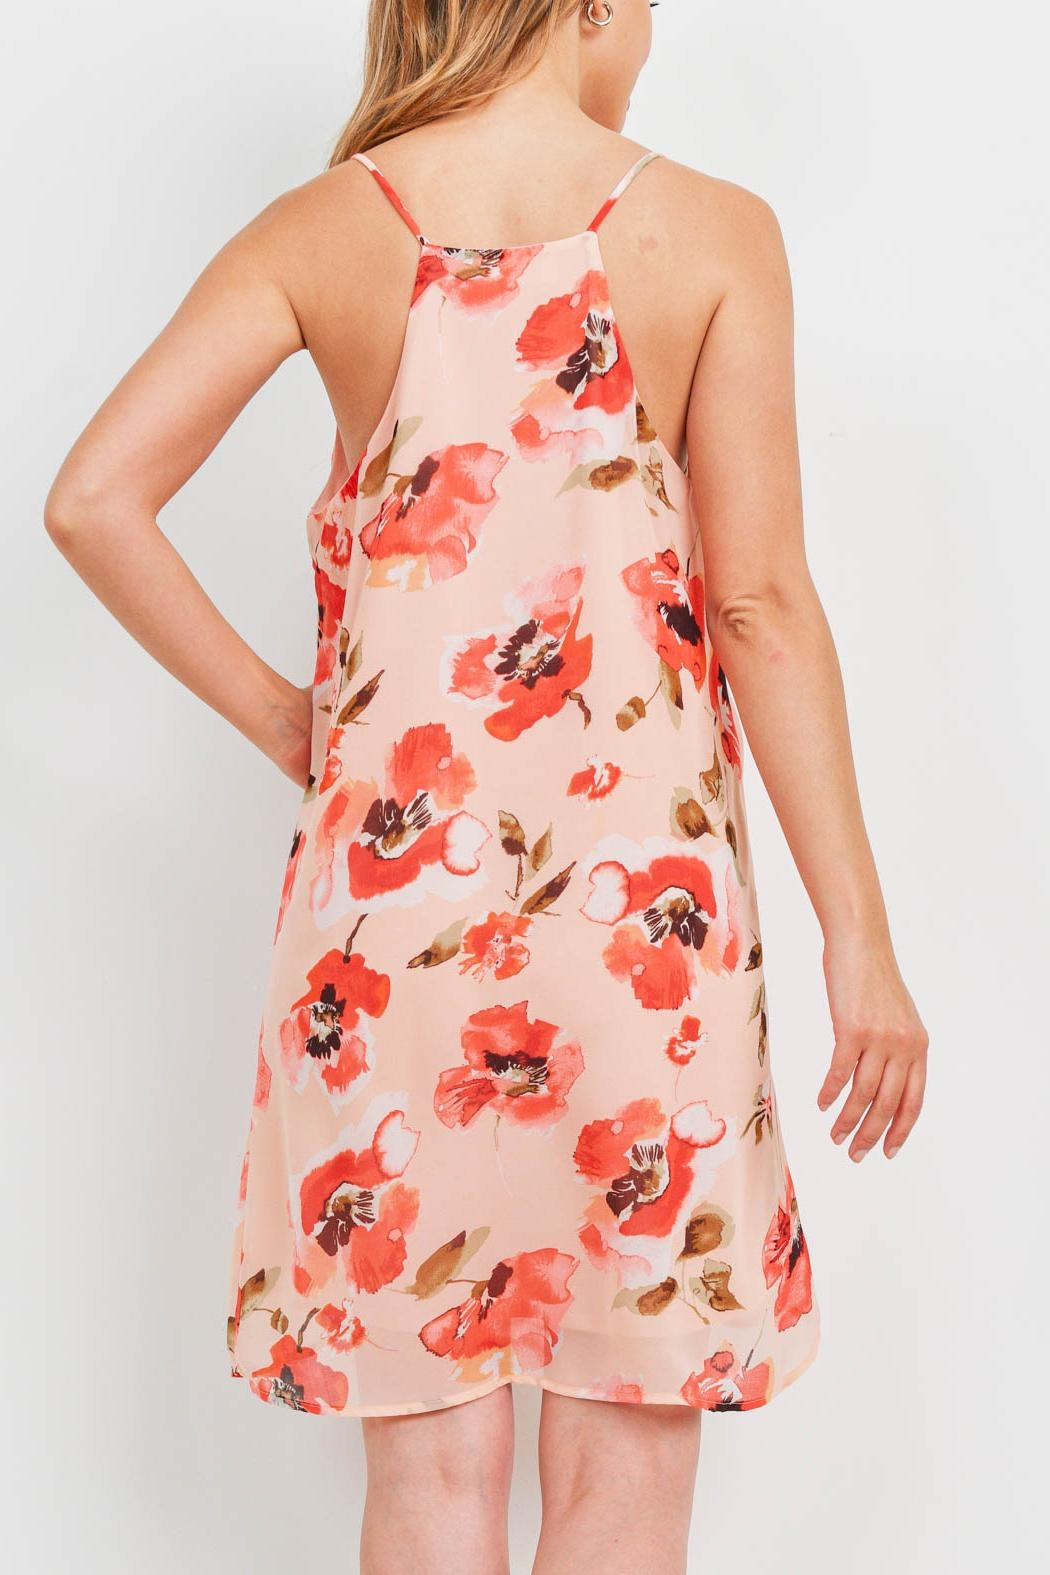 Riah Fashion Spaghetti-Straps-Floral-Print-Dress-With-Inside-Lining - Front Full Image